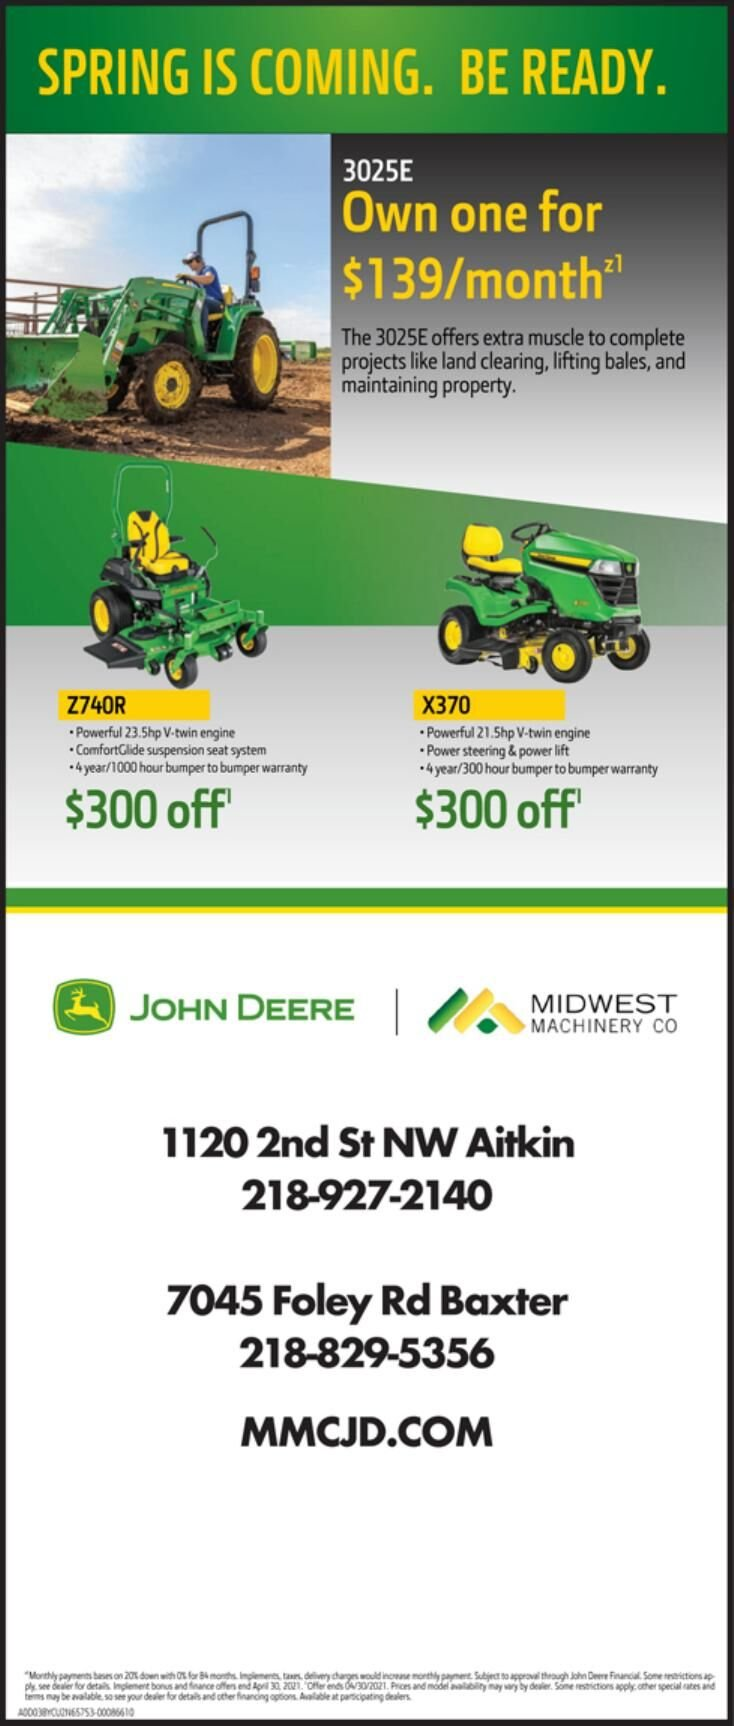 Midwest Machinery 3-6-2021